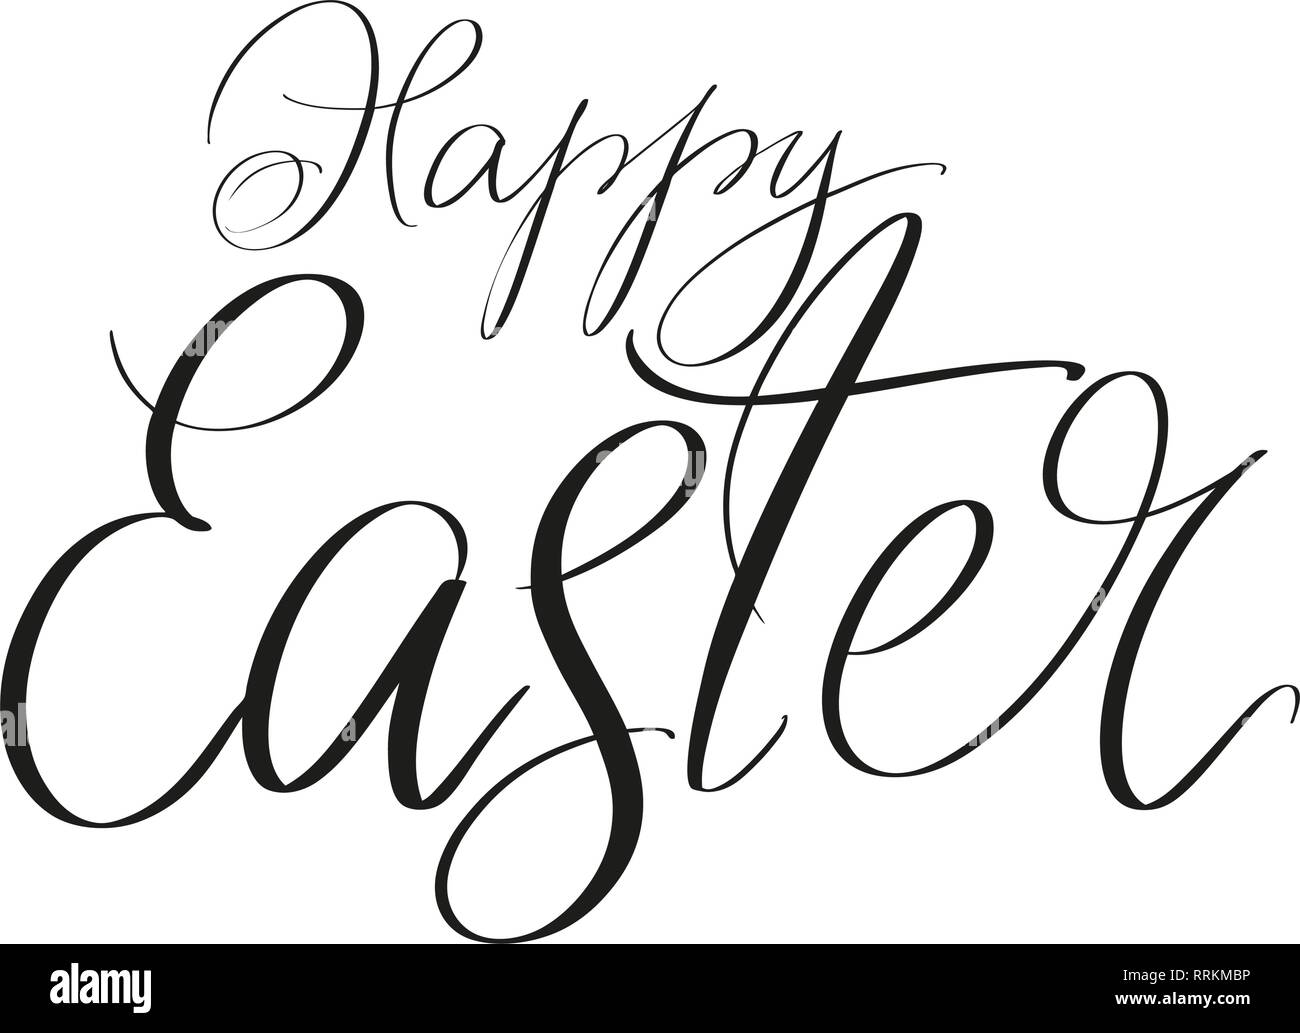 Easter Greetings Black And White Stock Photos Images Alamy